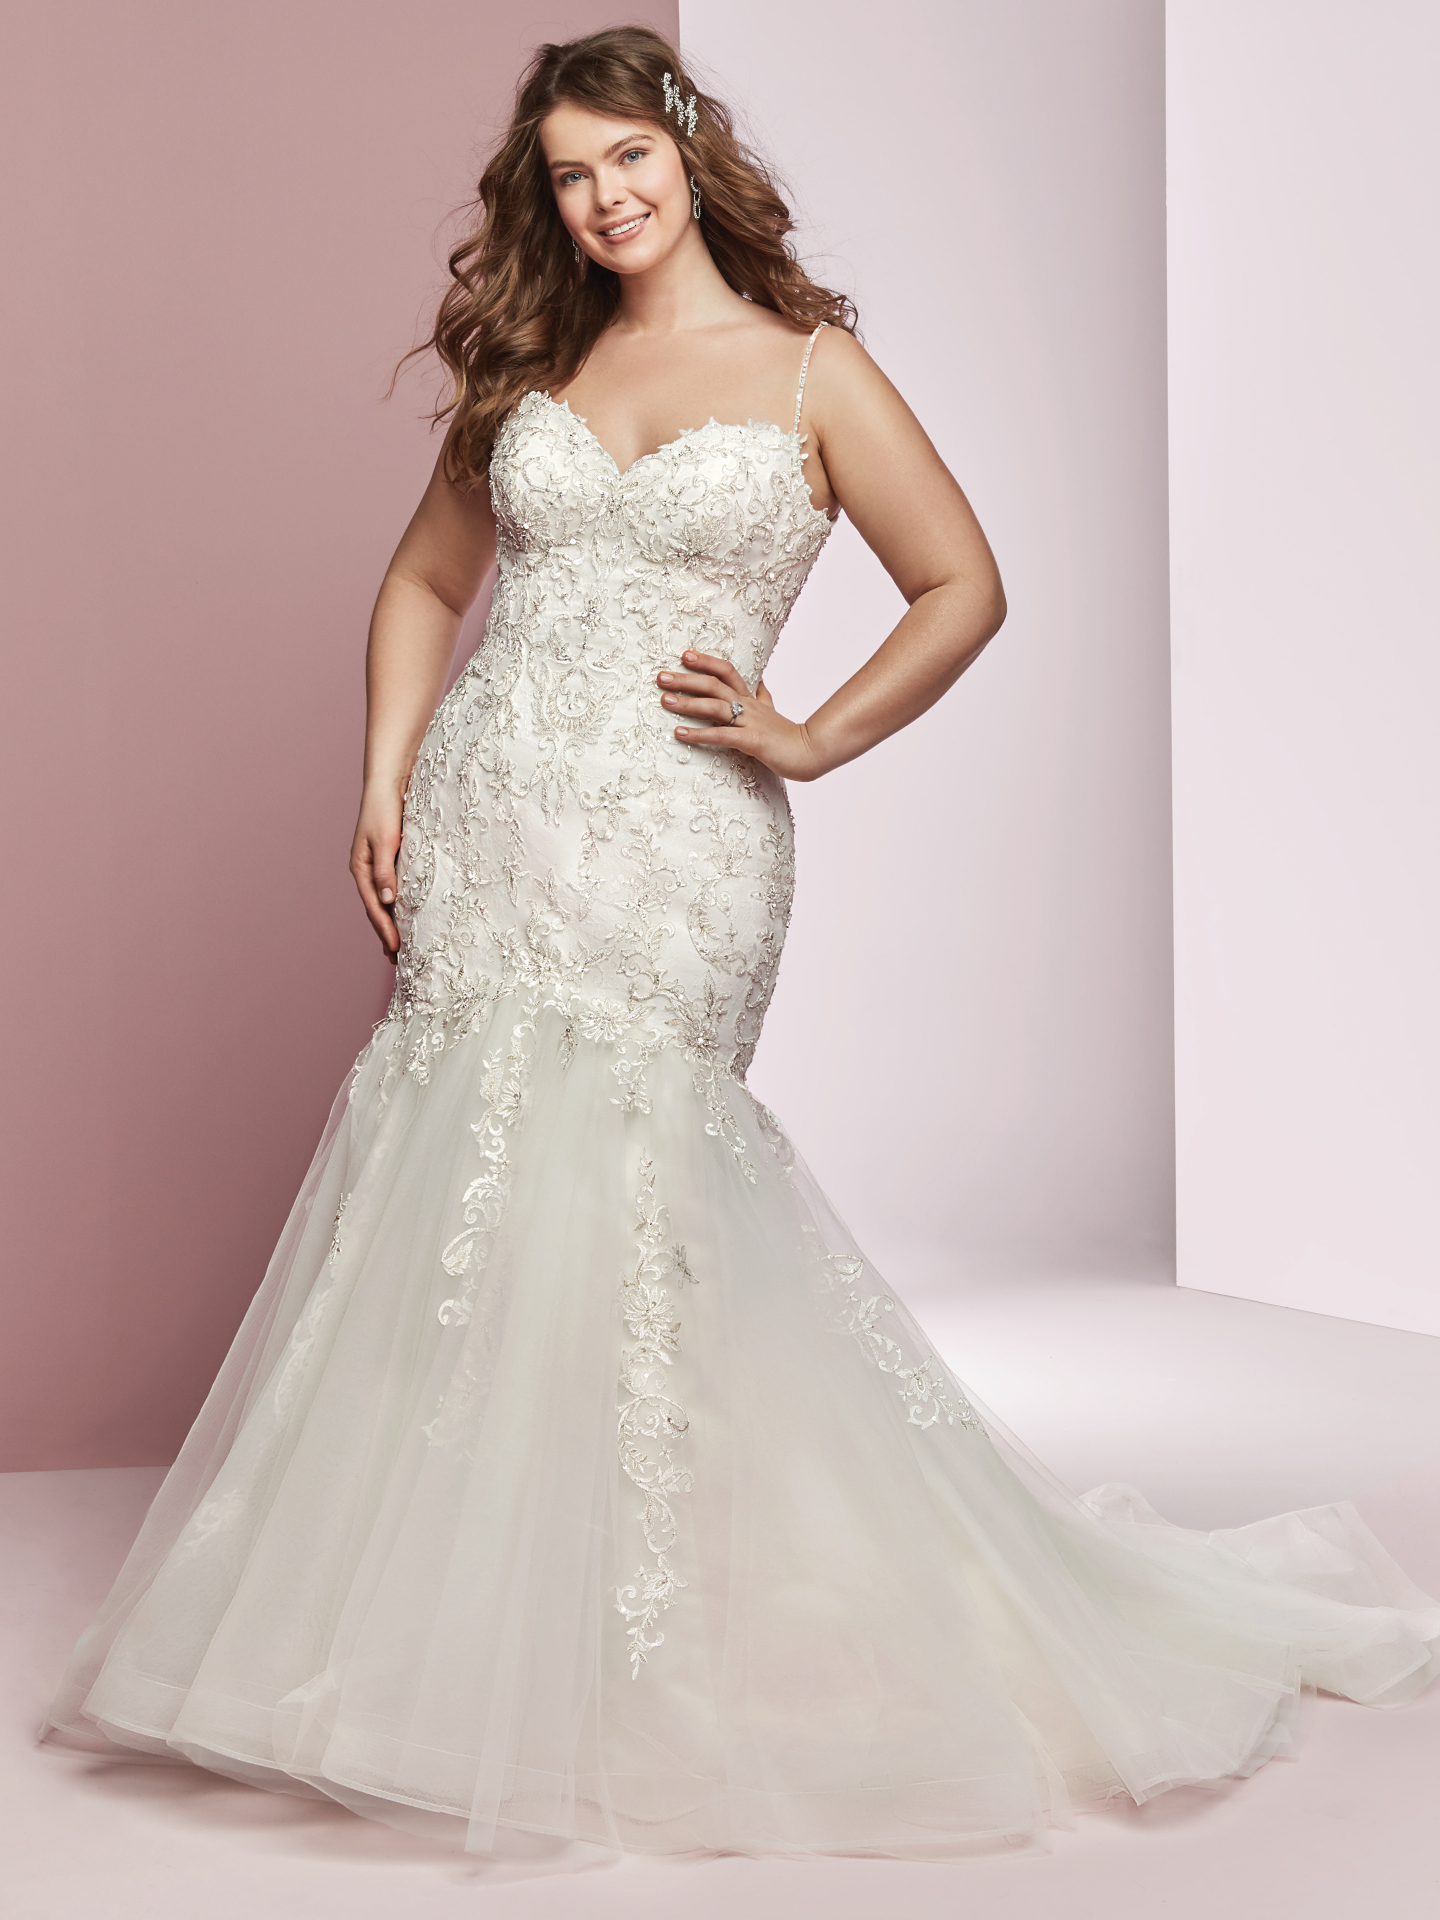 The Ultimate Guide to Wedding Gowns for Curvy Brides from Whitney of CurveGenius - Try the Claire Ann wedding dress by Rebecca Ingram and let the embroidered lace hug your curves